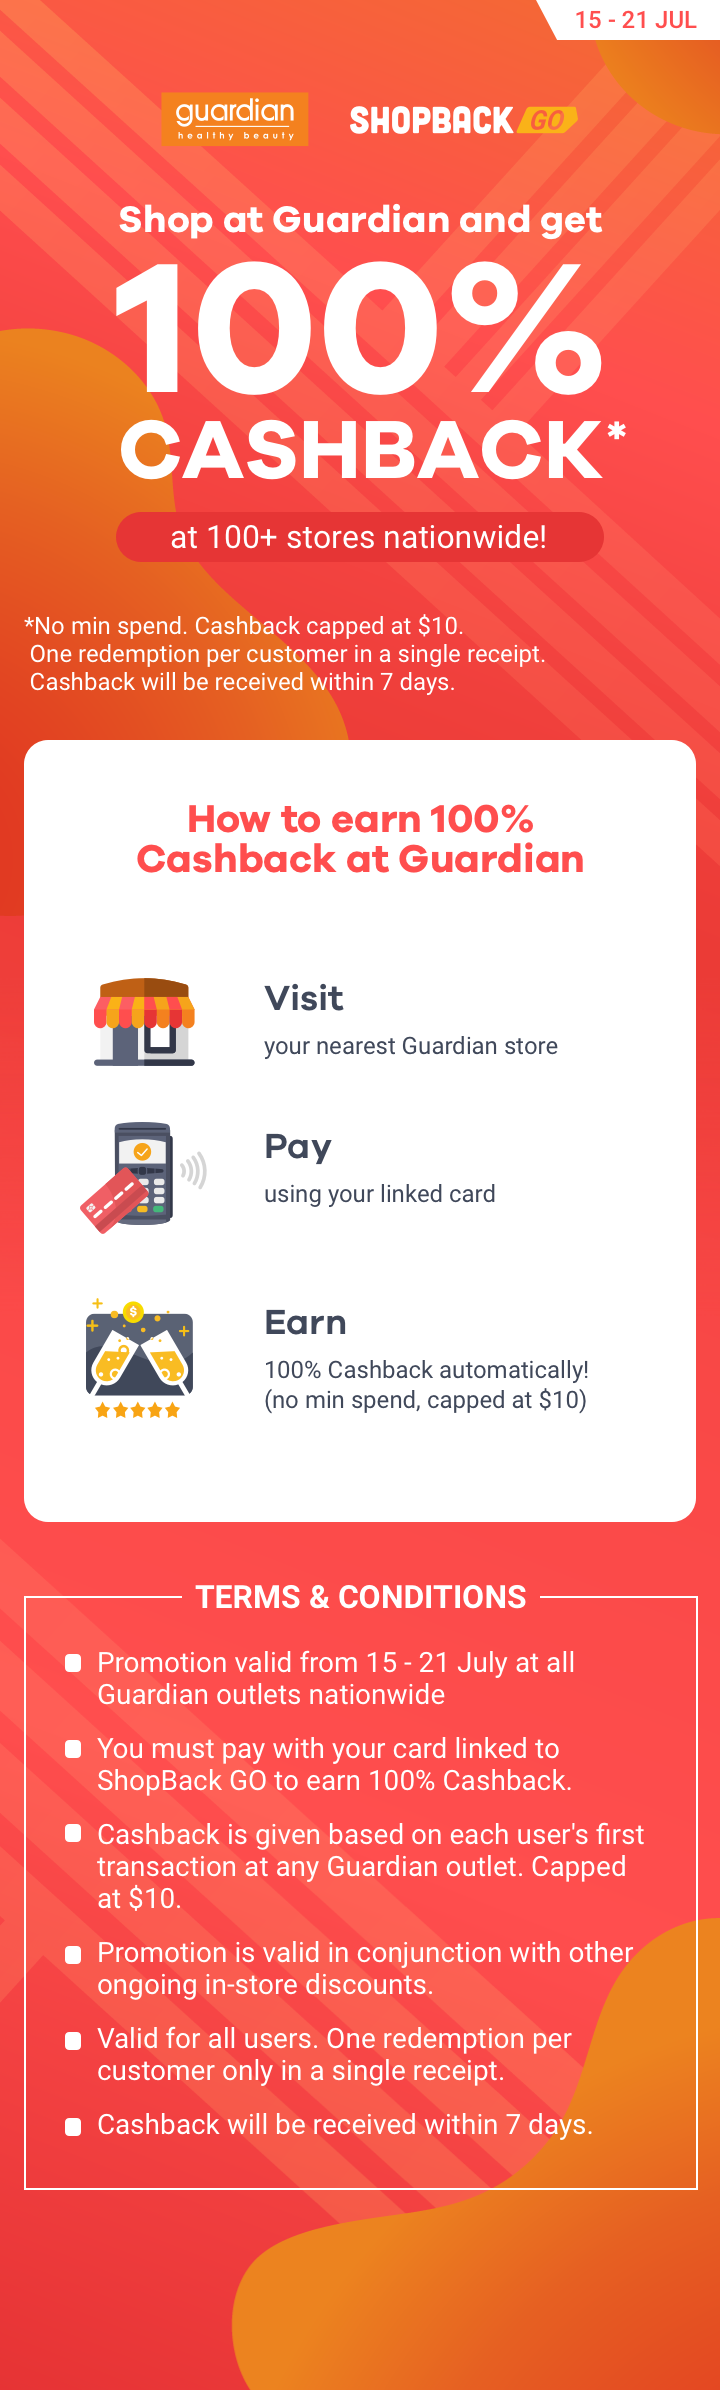 ShopBack GO x Guardian